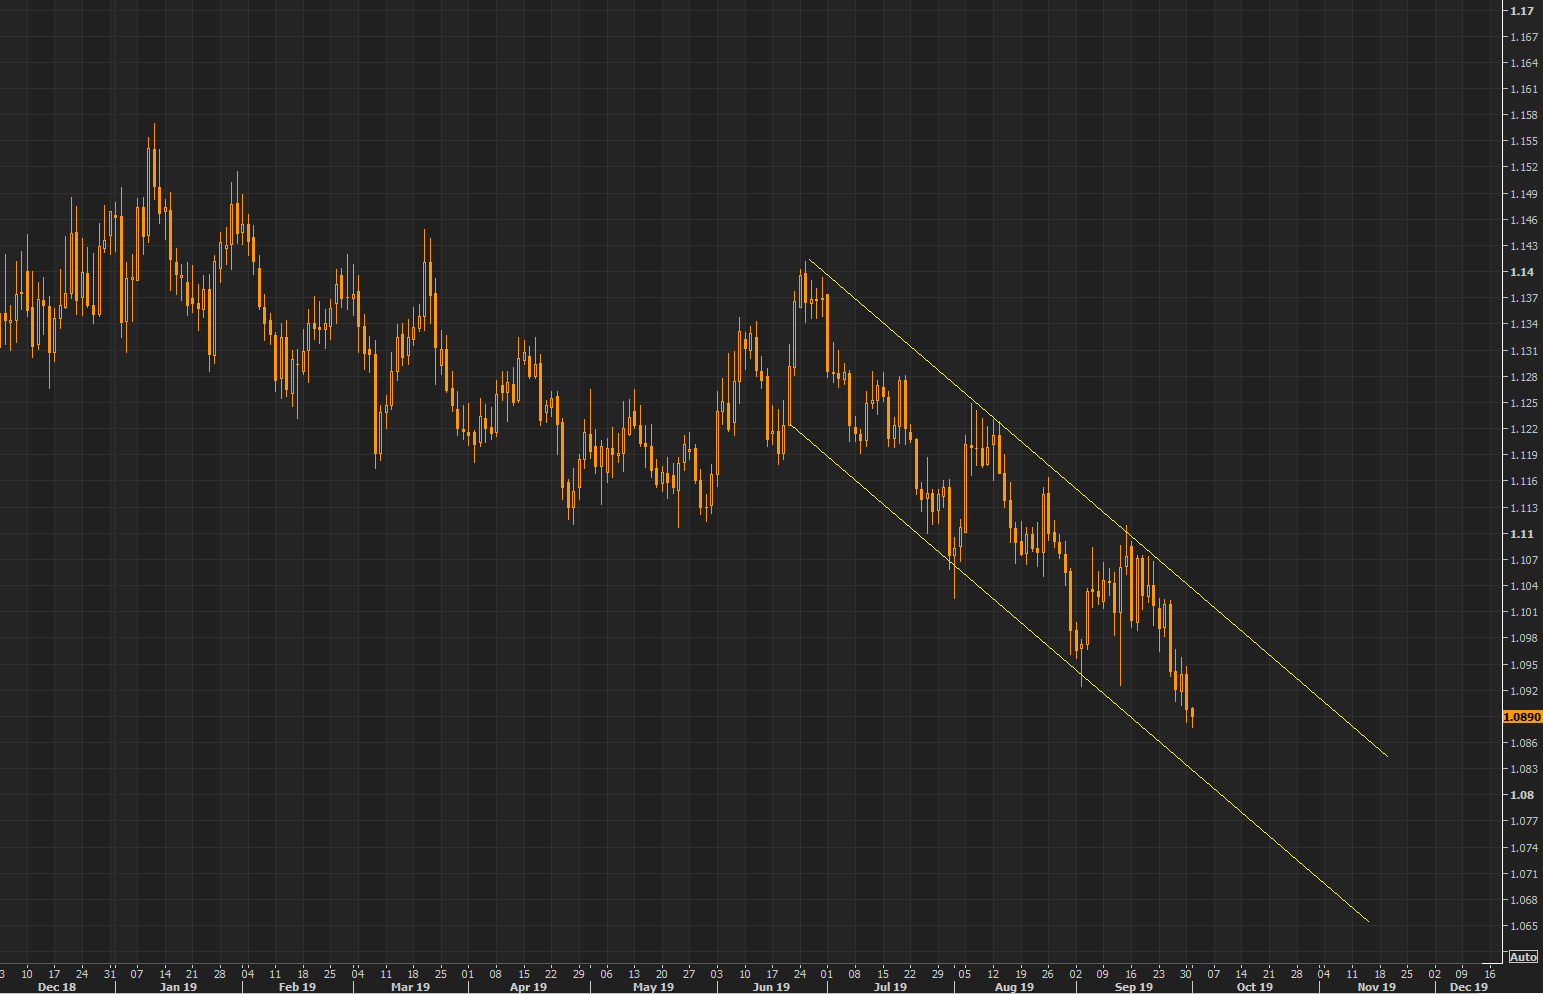 Euro continues the perfect channel down, watch the big 1.09 level here